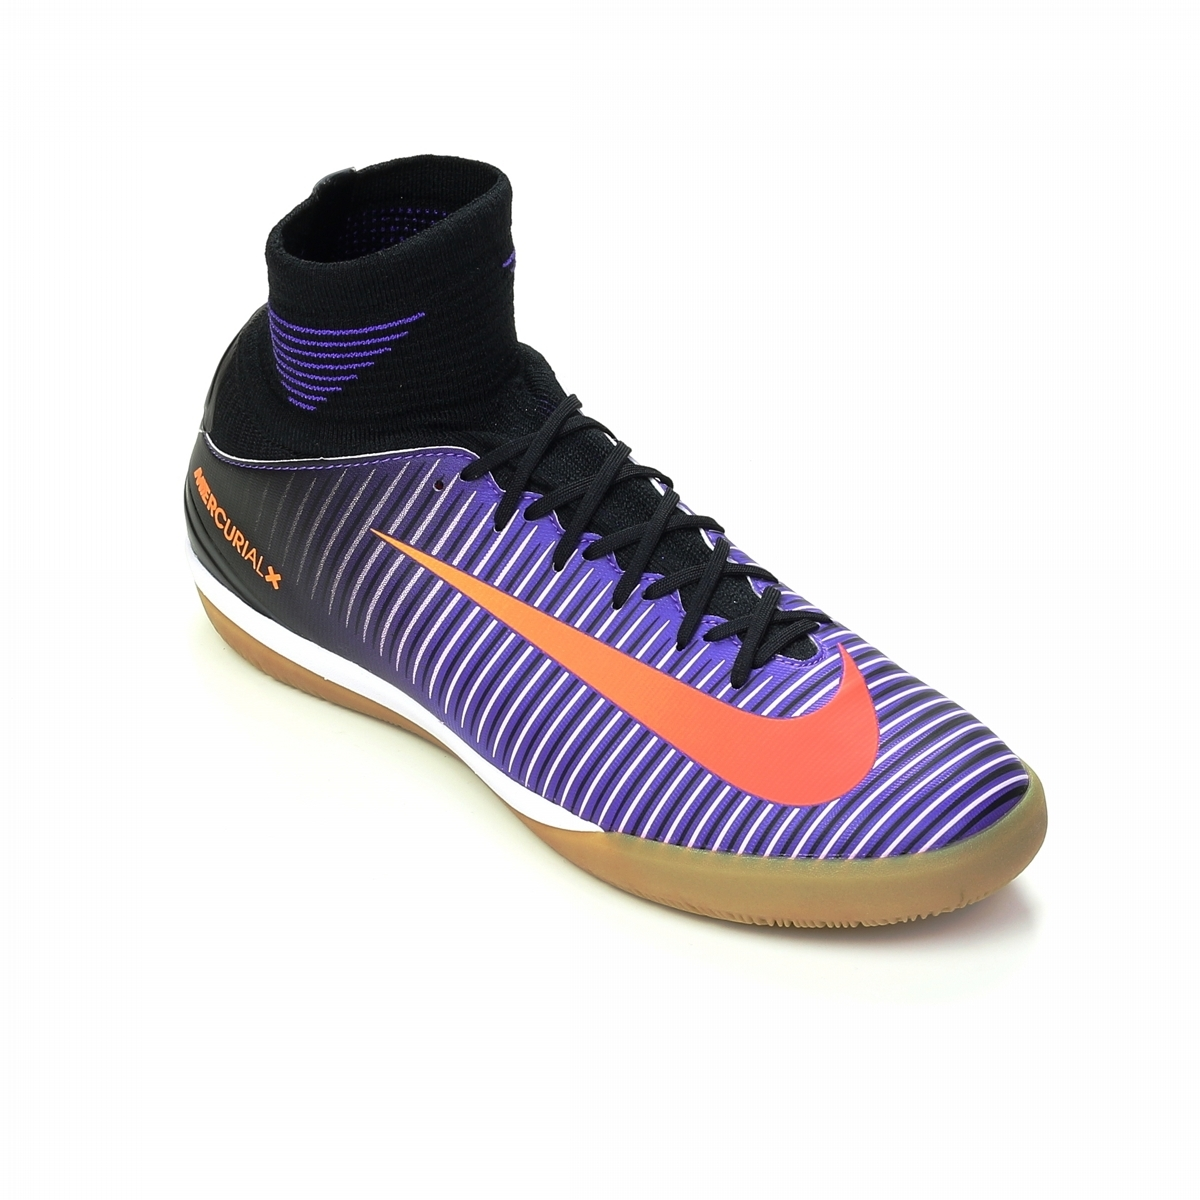 competitive price c7378 14ea6 Nike Youth MercurialX Proximo II IC Indoor Soccer Shoes (Black Total Crimson  Hyper ...